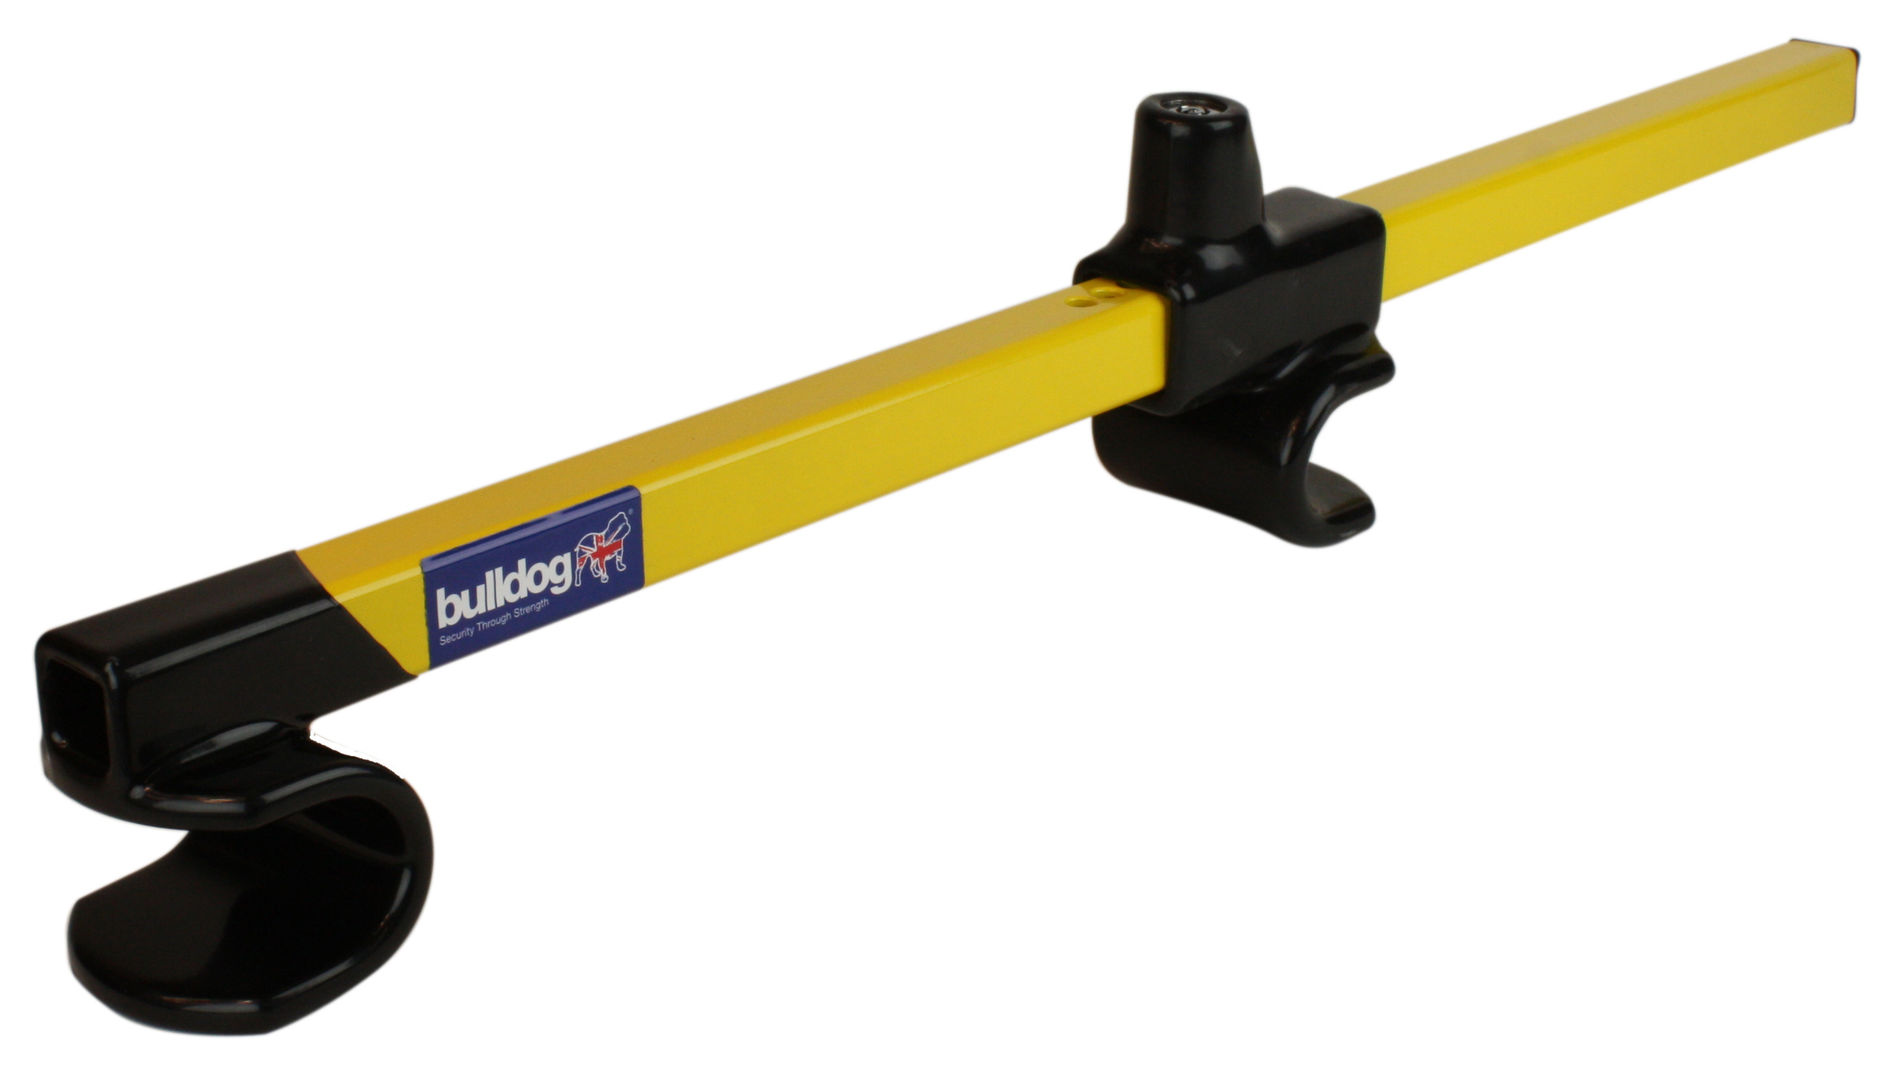 Bulldog BW550 Steering Wheel Lock